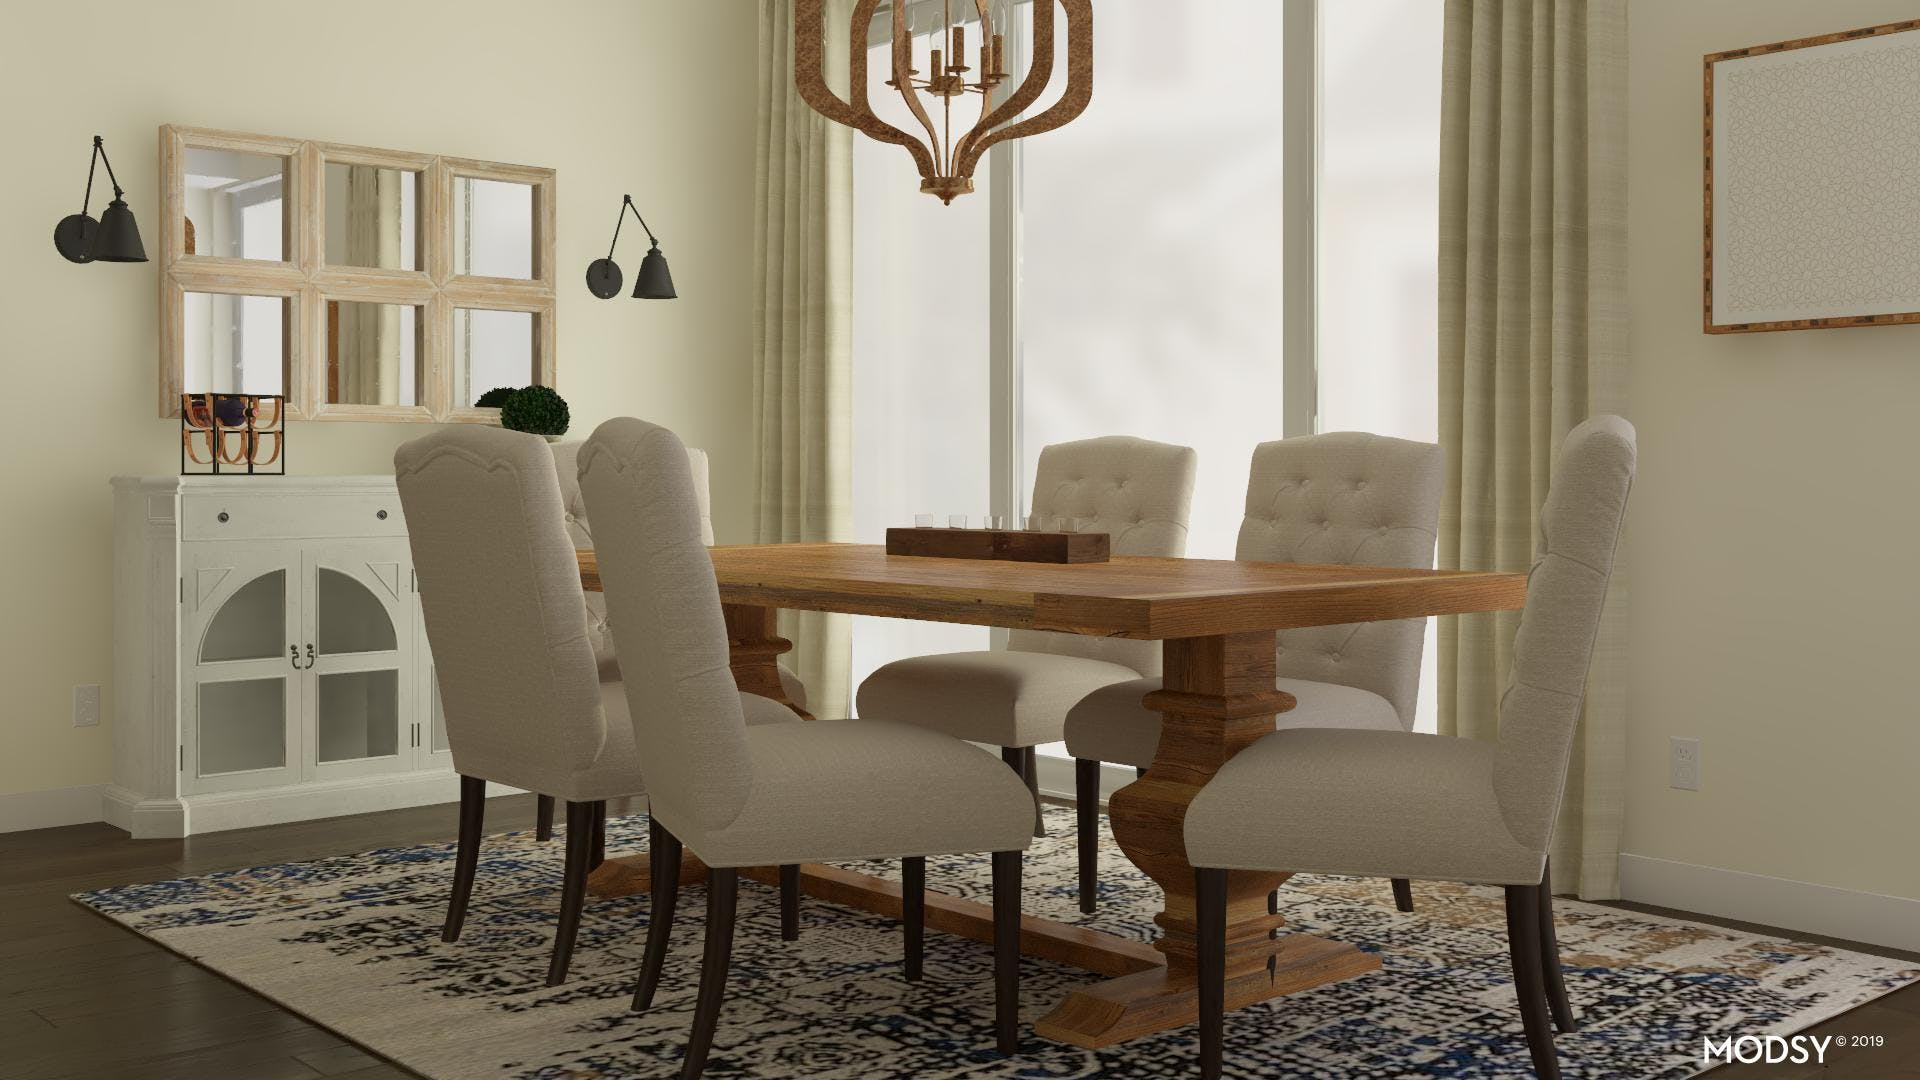 Neutral Rustic Dining Room